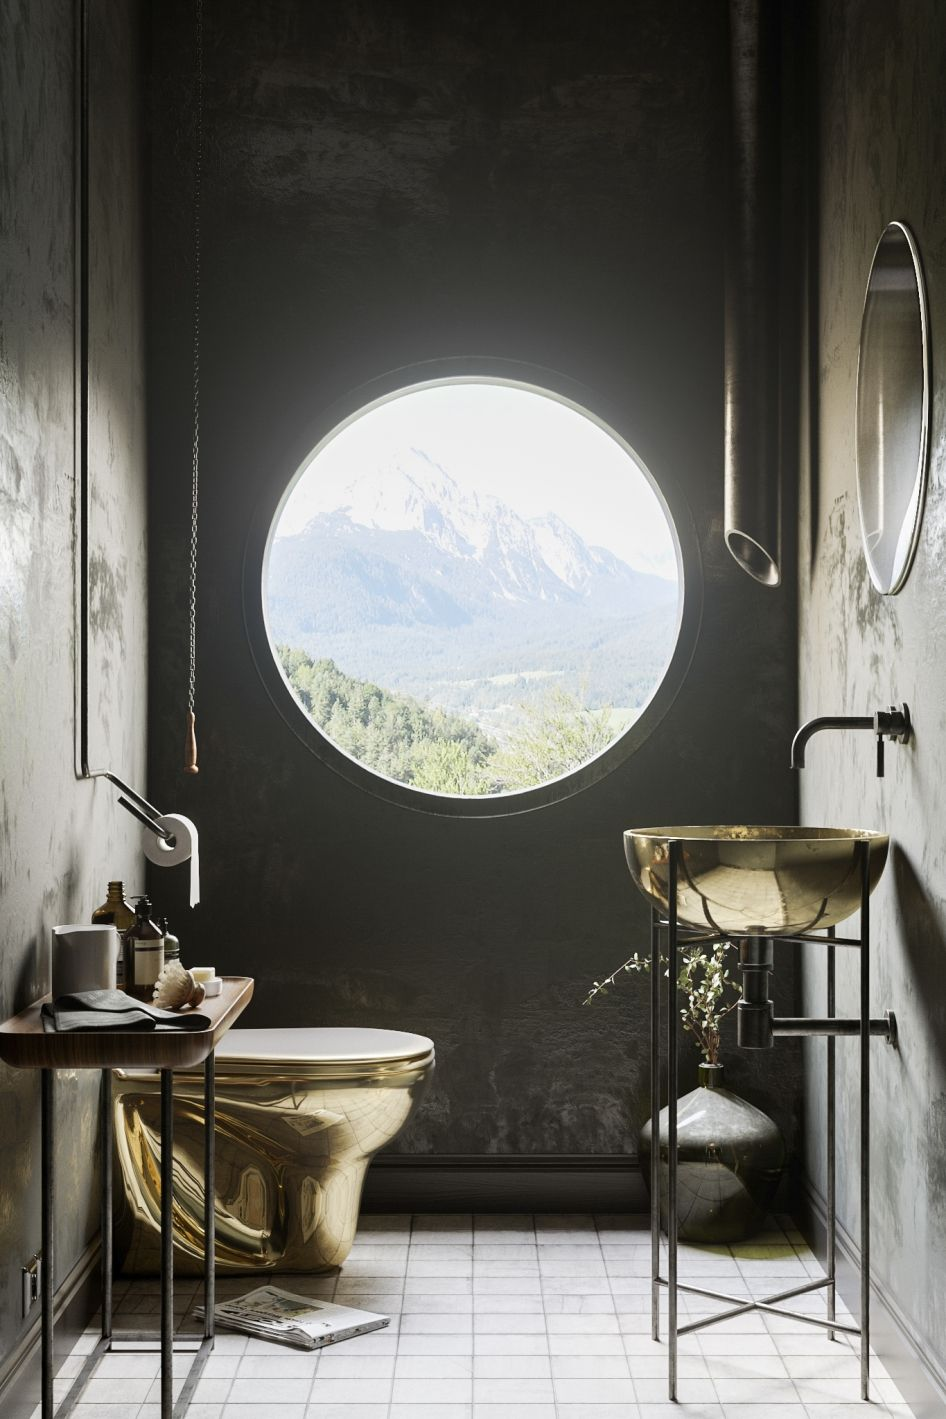 Small Round Windows: Gold Bathroom Suite With A Round Window Looking Over The